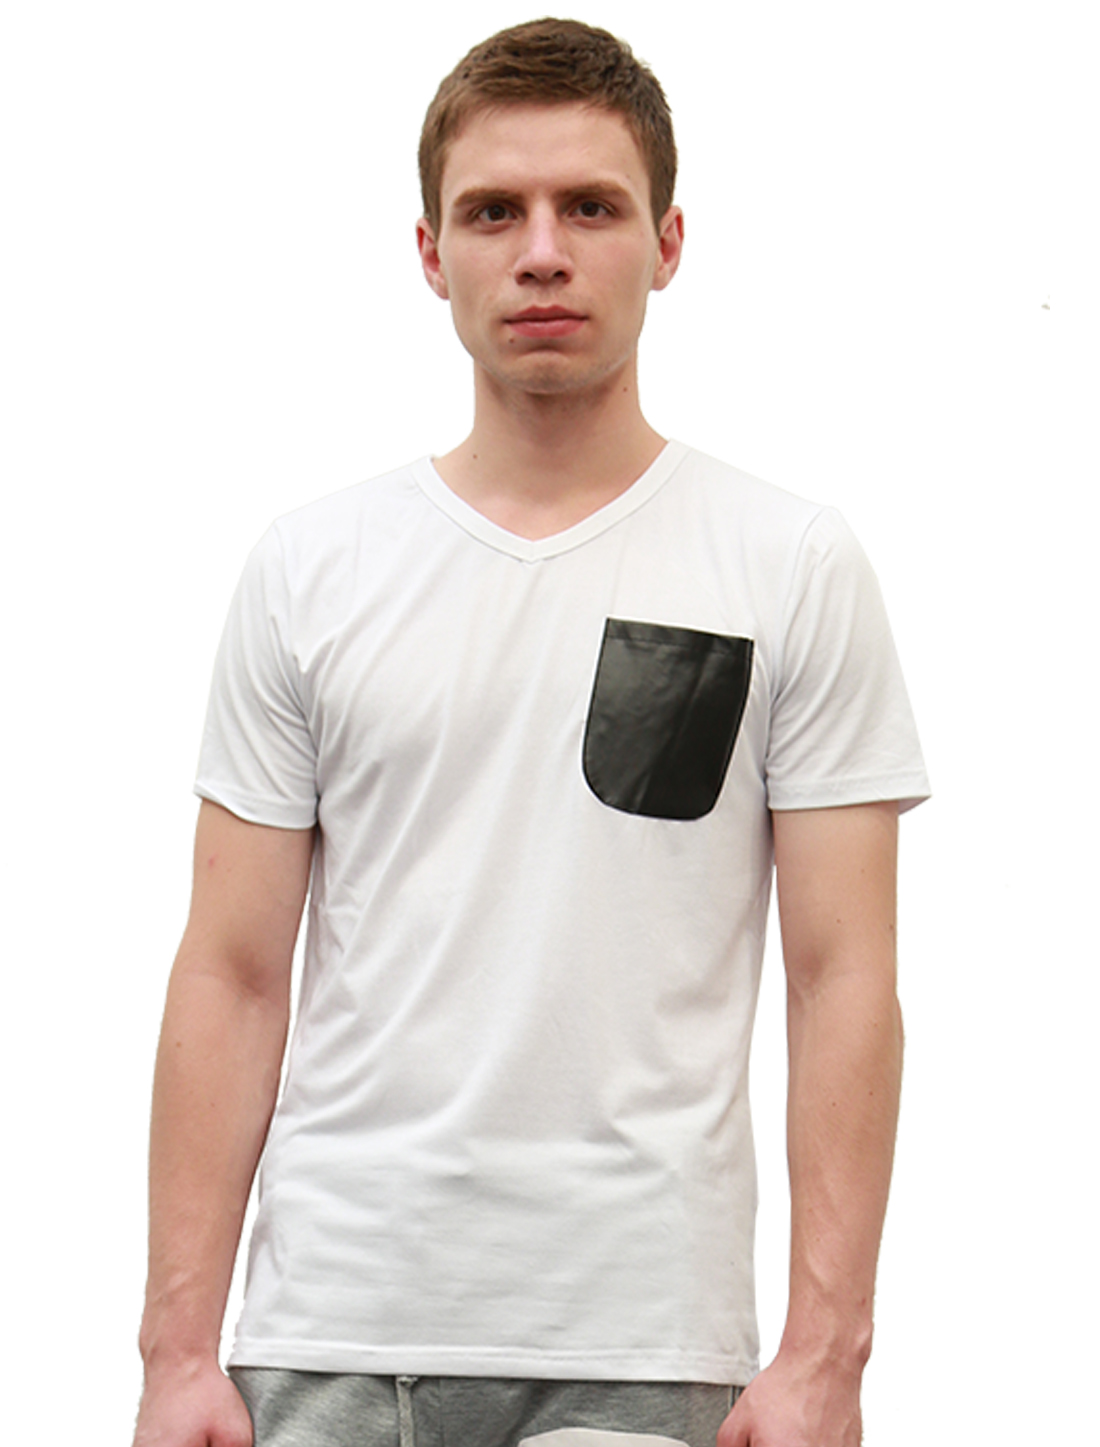 Mens White Stretchy Simple Style Single Pocket Short Sleeve Tee Shirt M